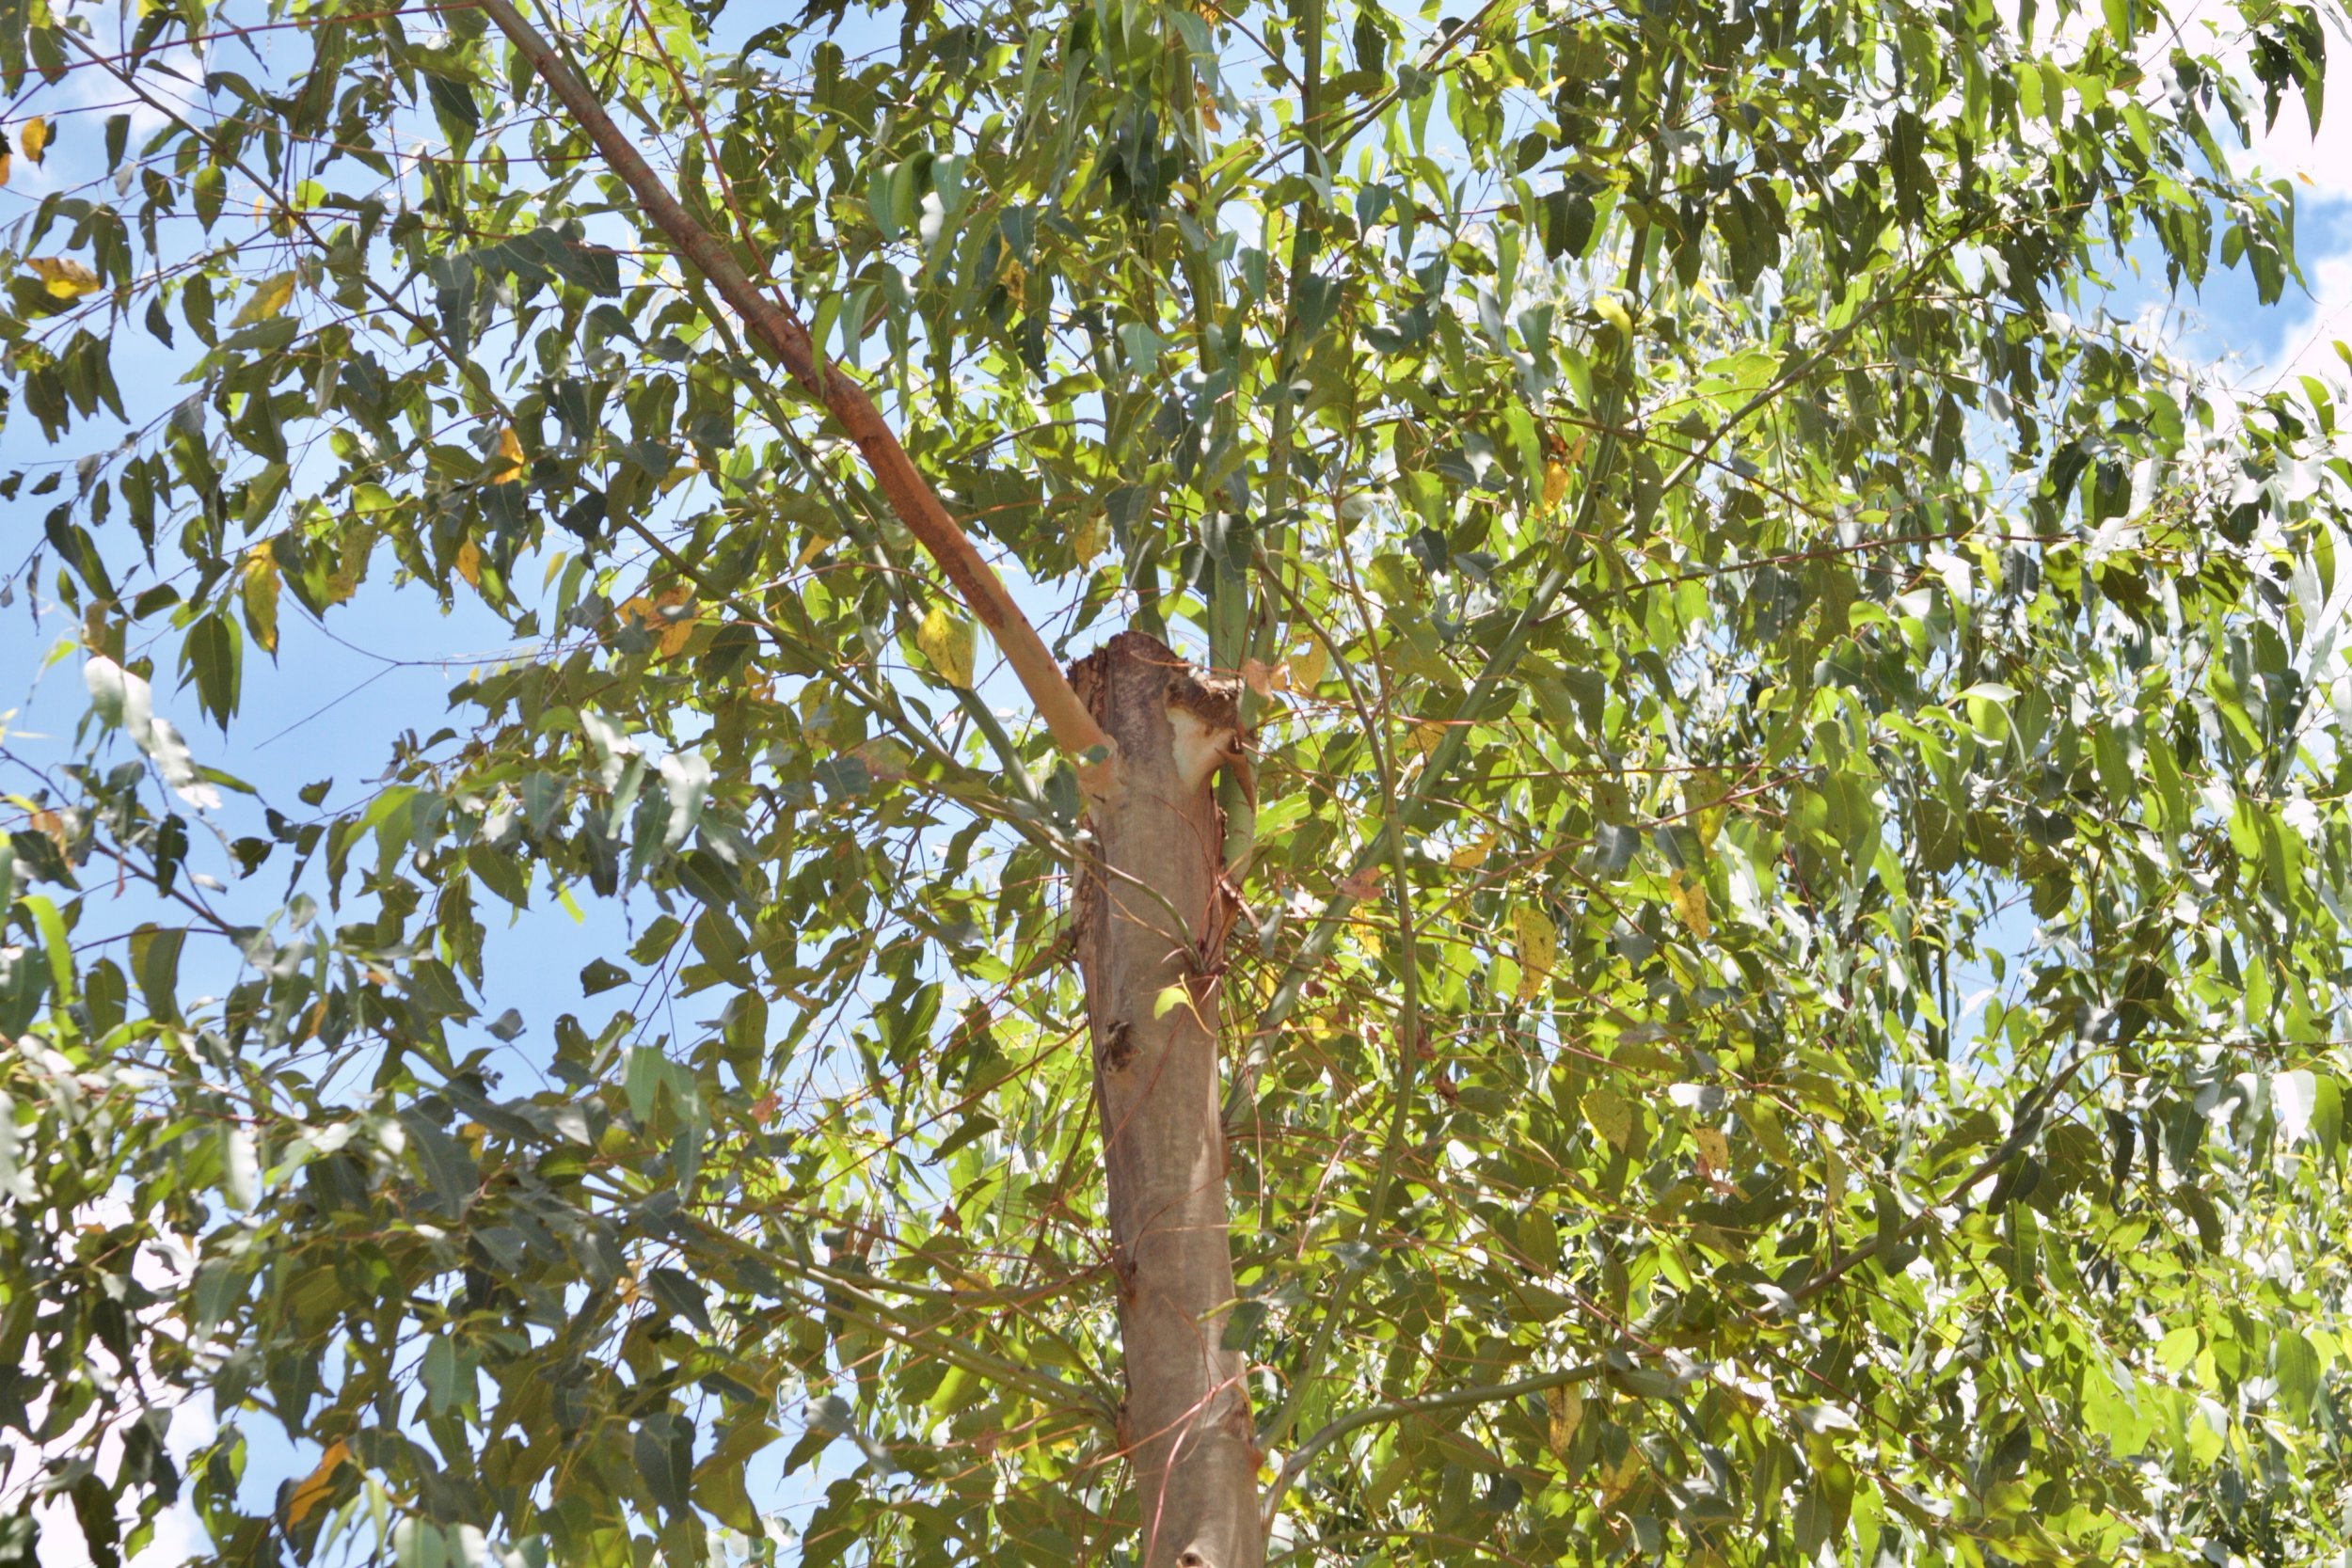 This eucalyptus tree is pruned to 30 feet in height. This style of management may create an ideal canopy, but it also creates management challenges. Canopy management can likely be done from waist height.